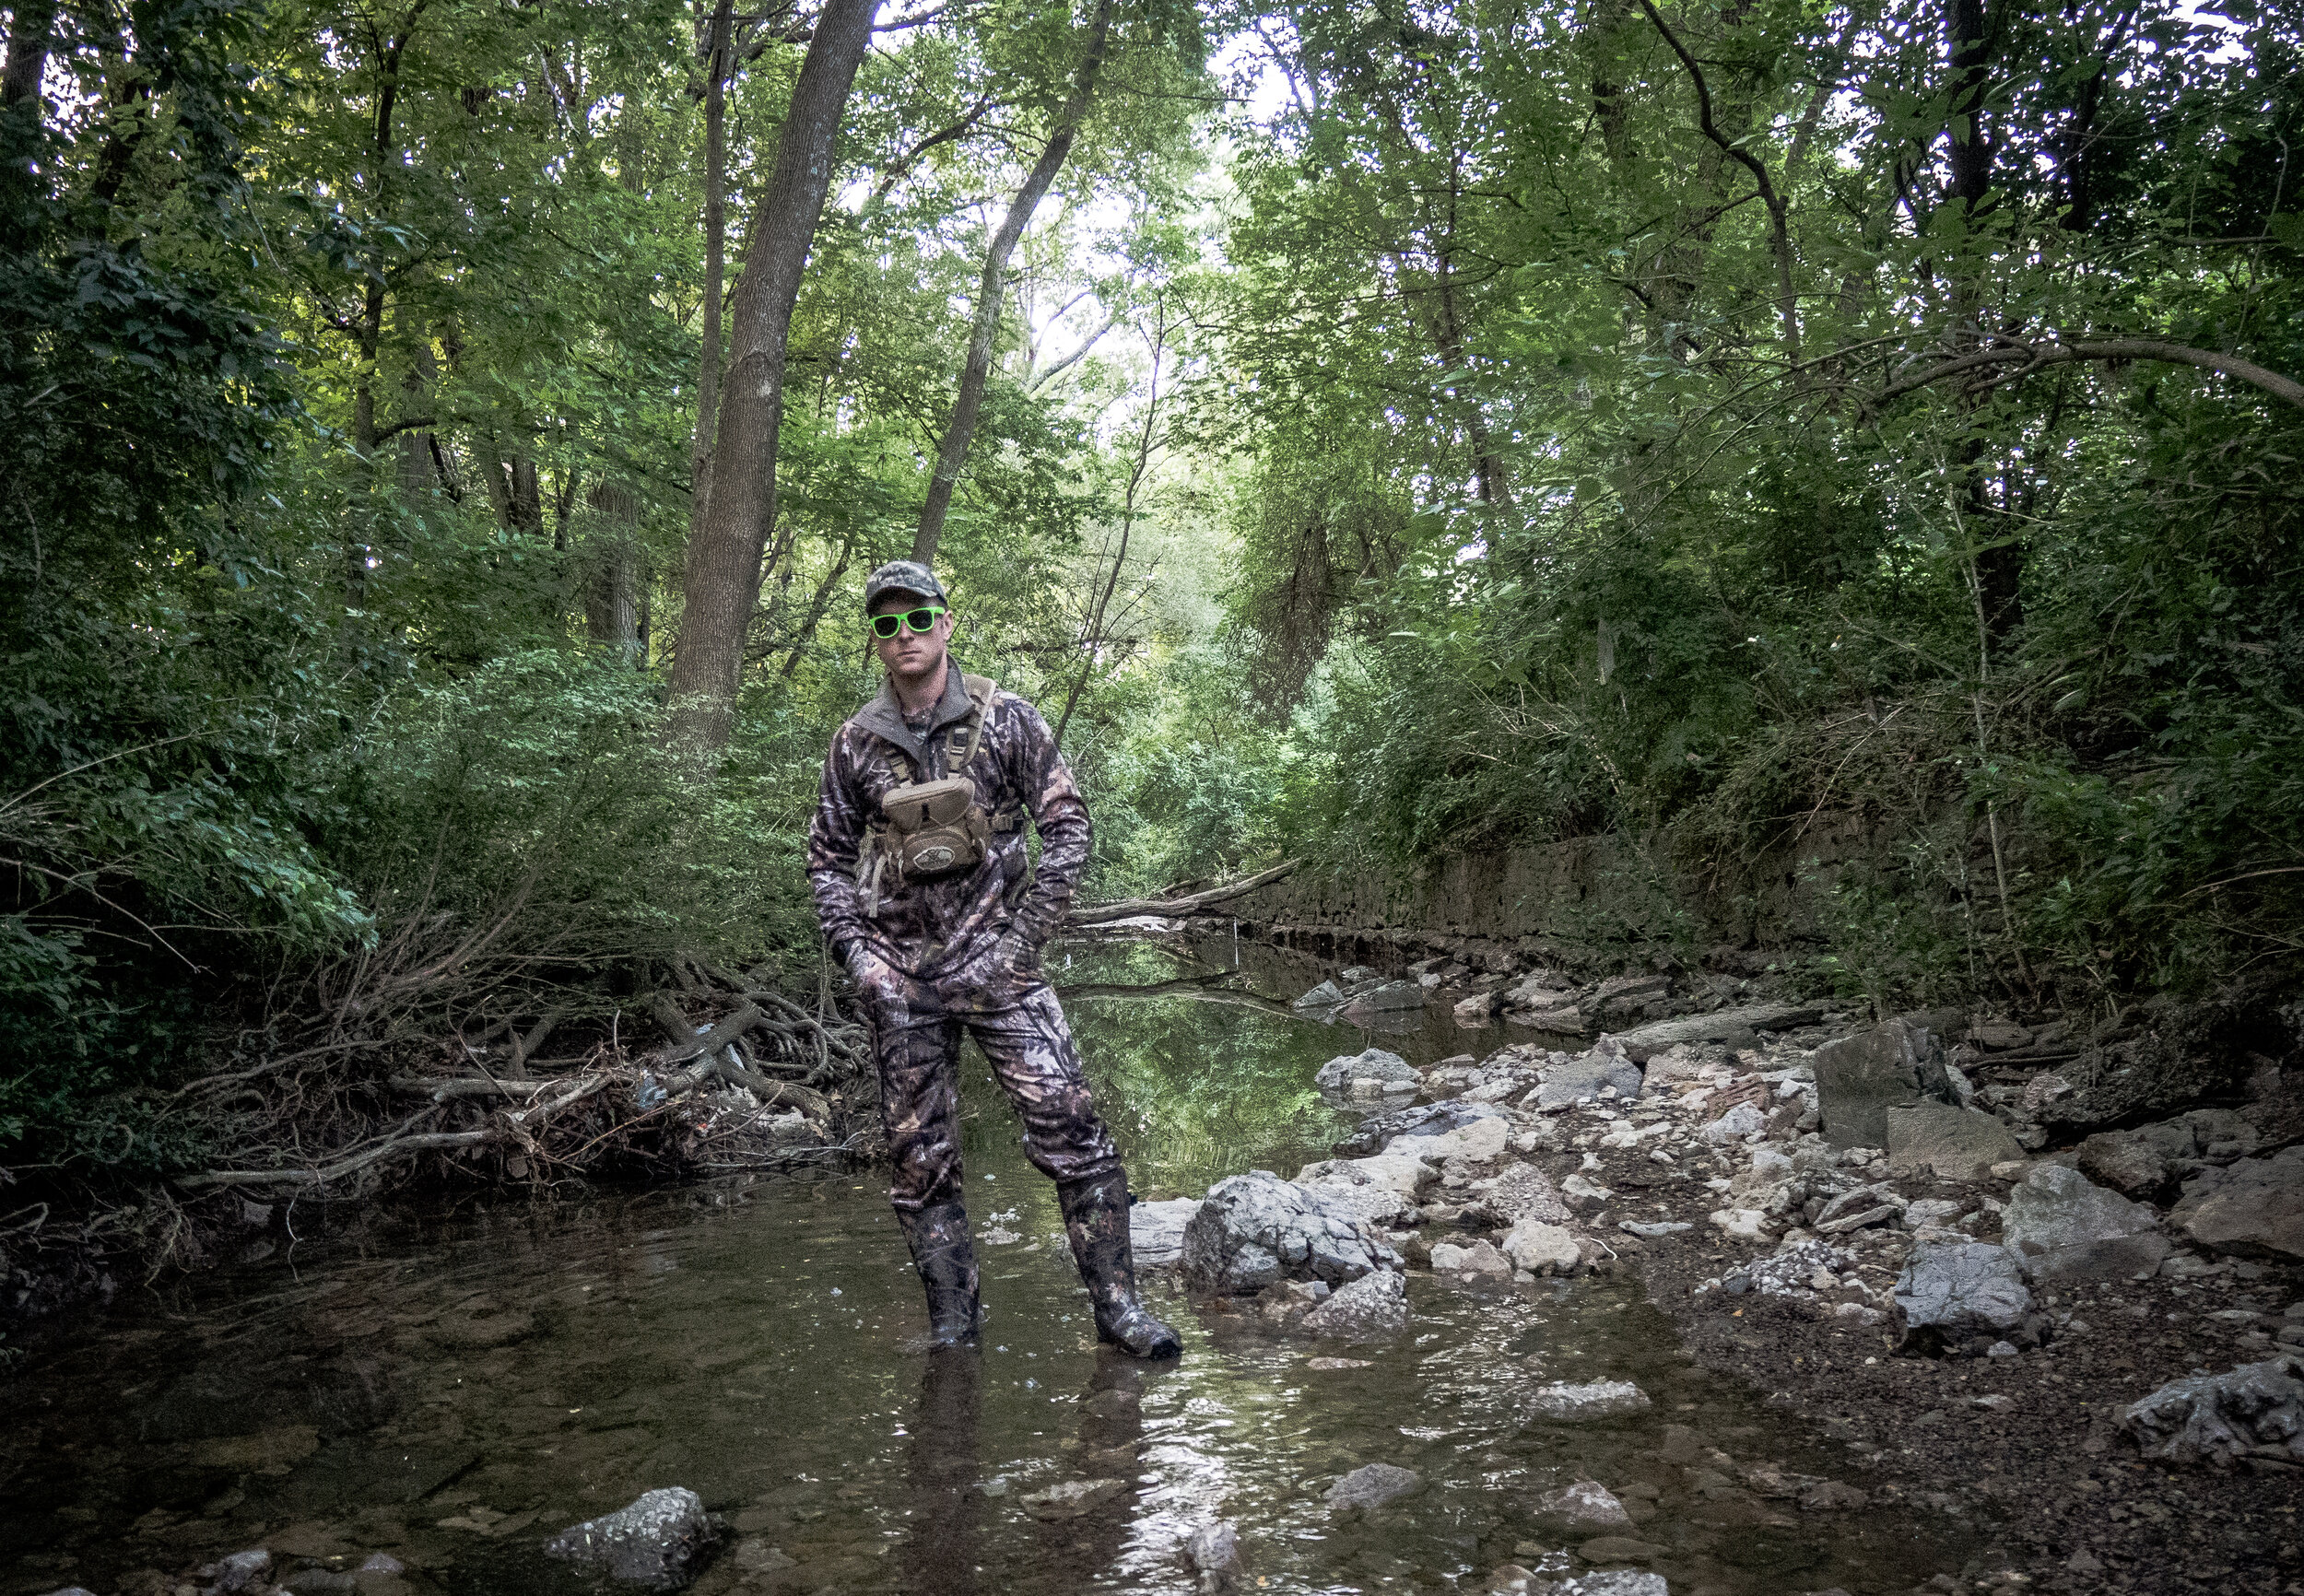 Welcoming the Starter Pack - Breaking down the barriers to entry with deer hunting gear.